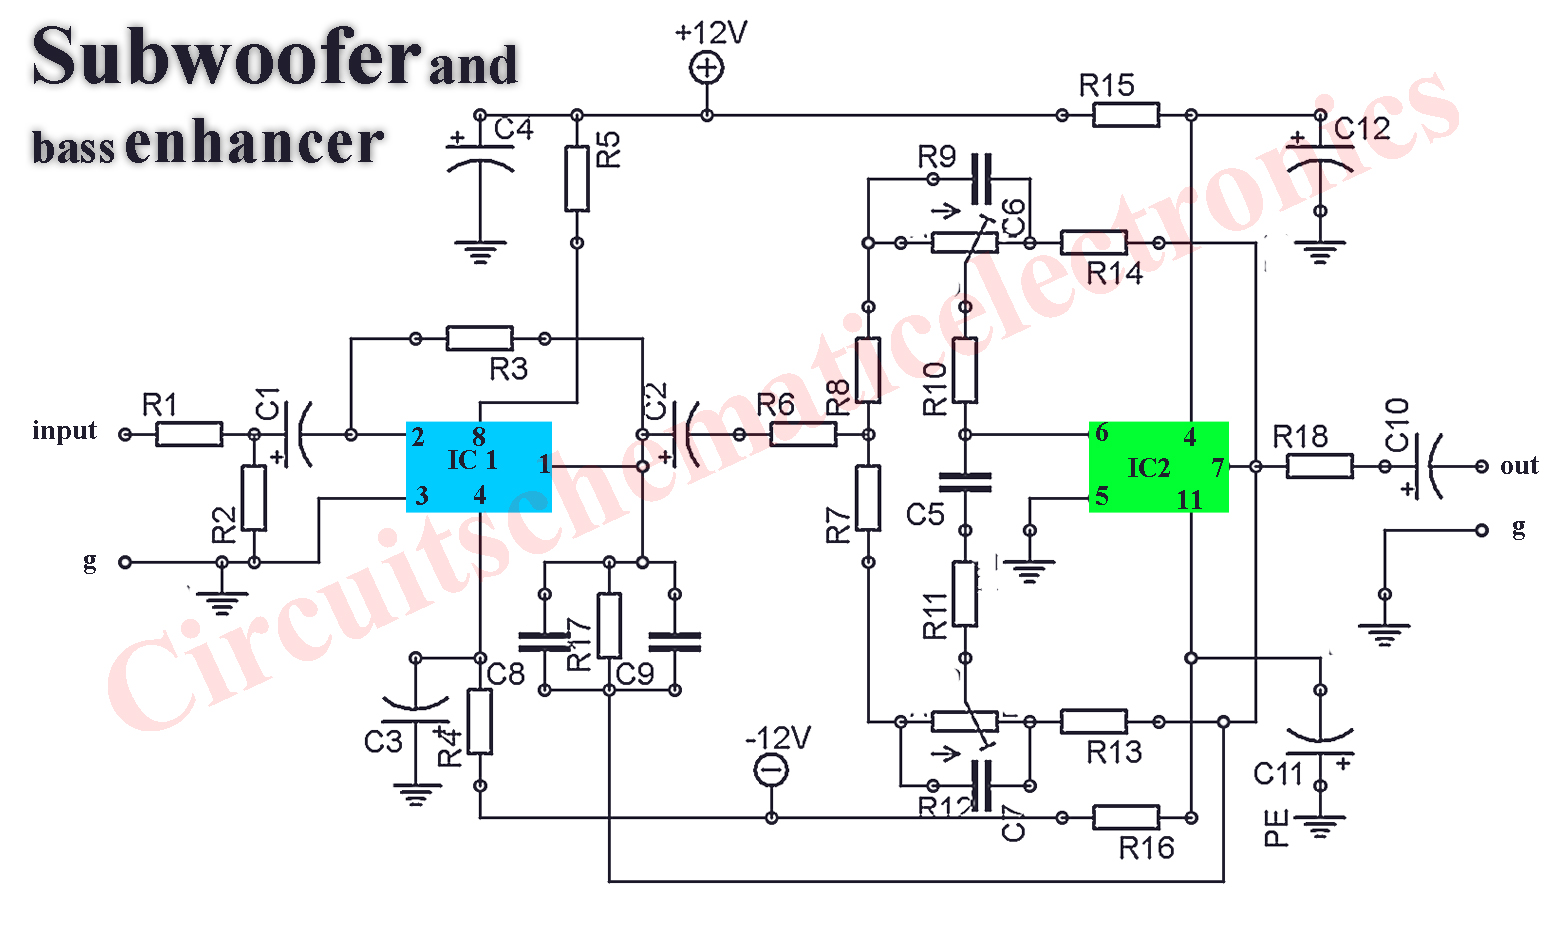 Circuit Diagram Of Amplifier 12v 20w Stereo Audio Tda2005 Schematic Design Subwoofer Booster With Pcb Layout Electronic